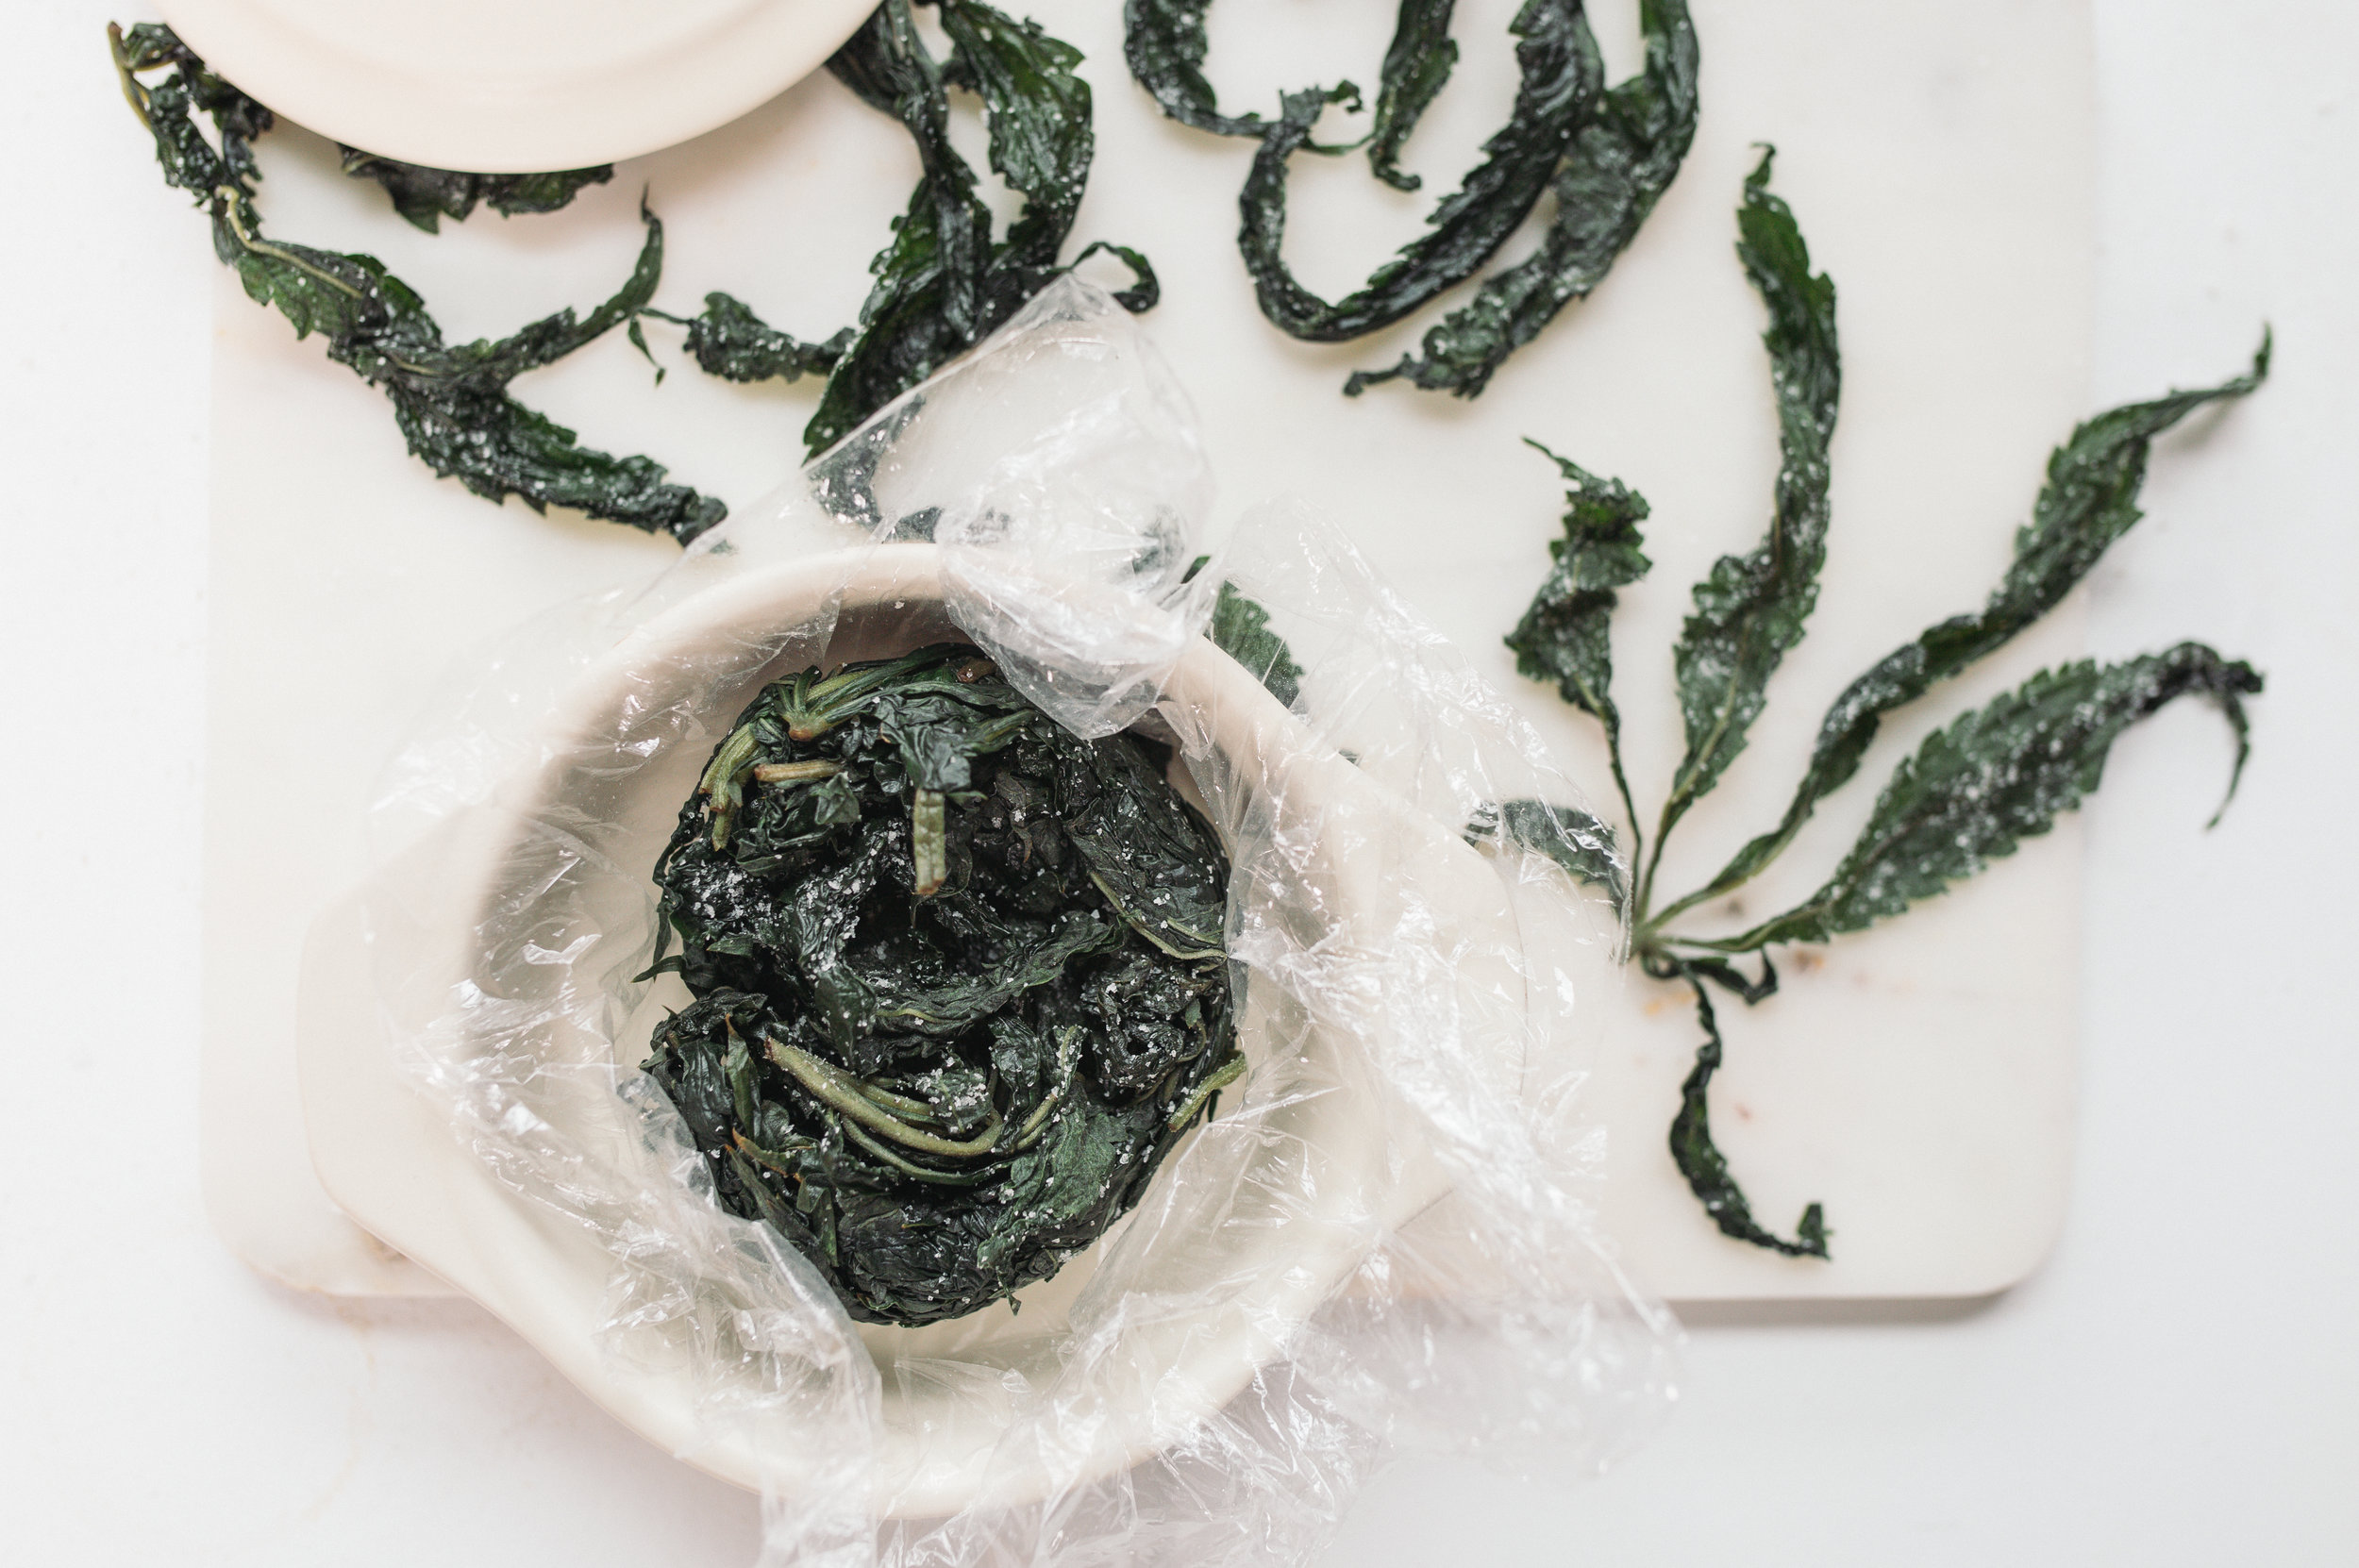 Salt-Cured Cannabis Leaves by Monica Lo, Sous Weed